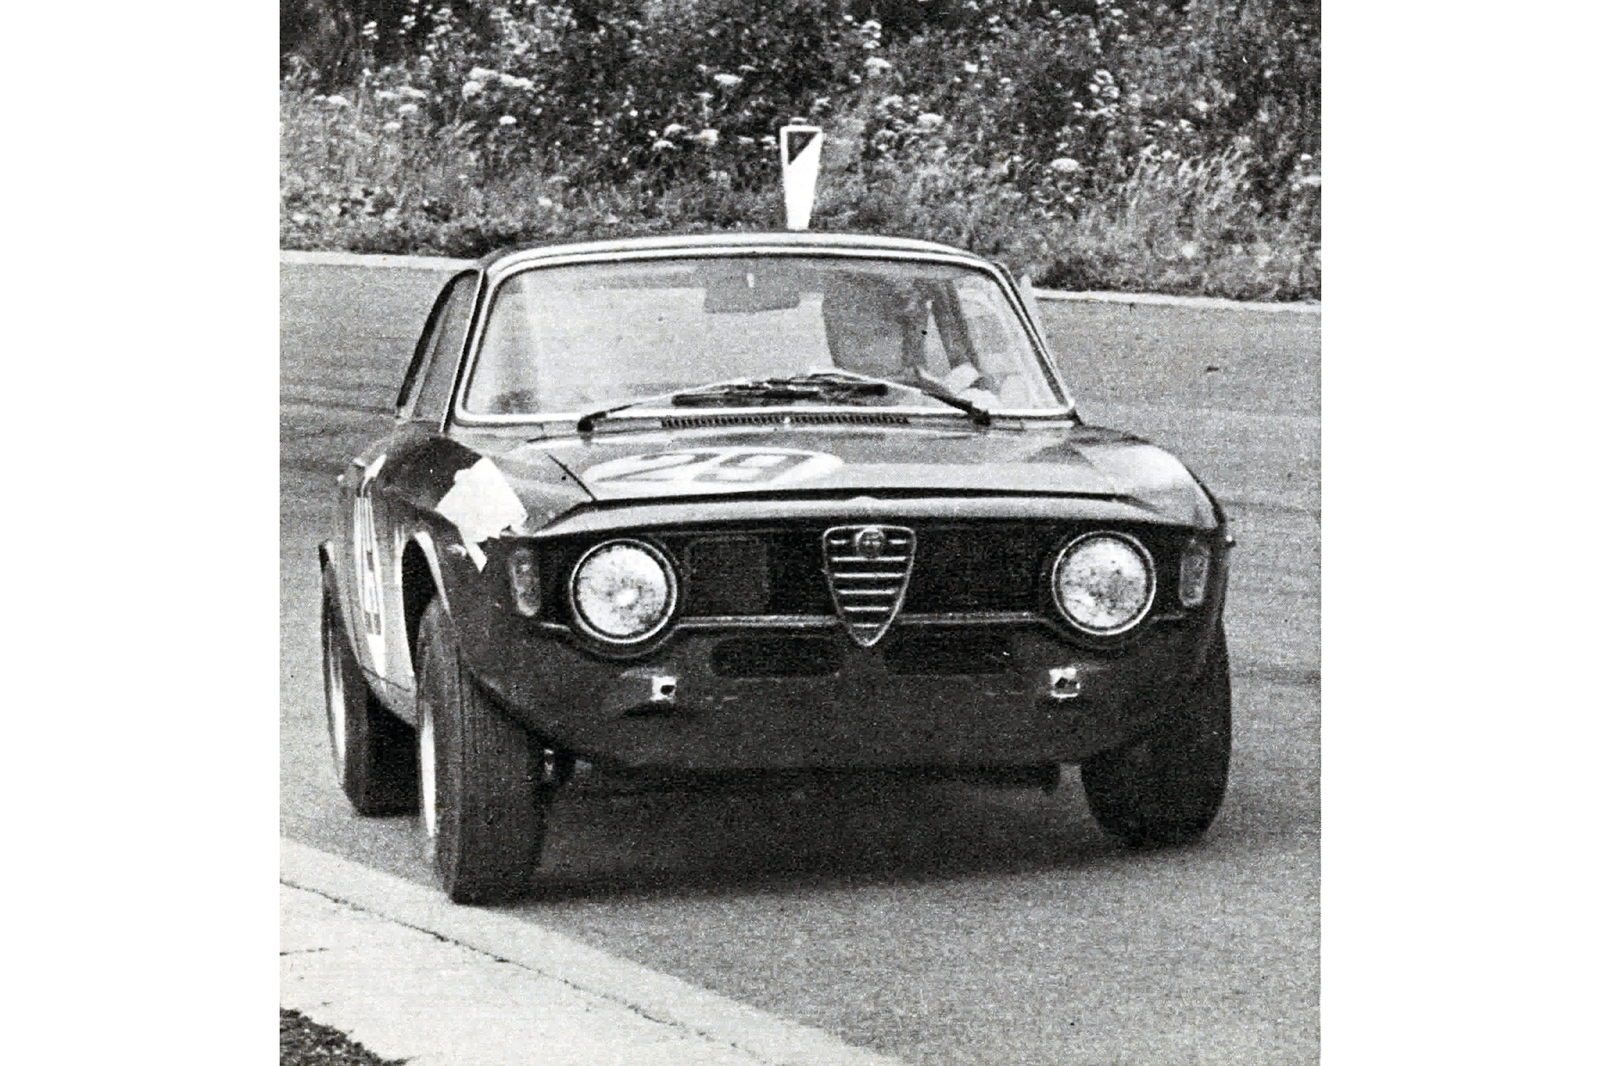 Throwback Thursday 1967 Alfa Romeo Gta First Drive Autocar Ignition Timing We Then Went To The Mira Test Track I Was Away Into Double Bend And Down Main Straight Which Is Just Over Half A Mile Long